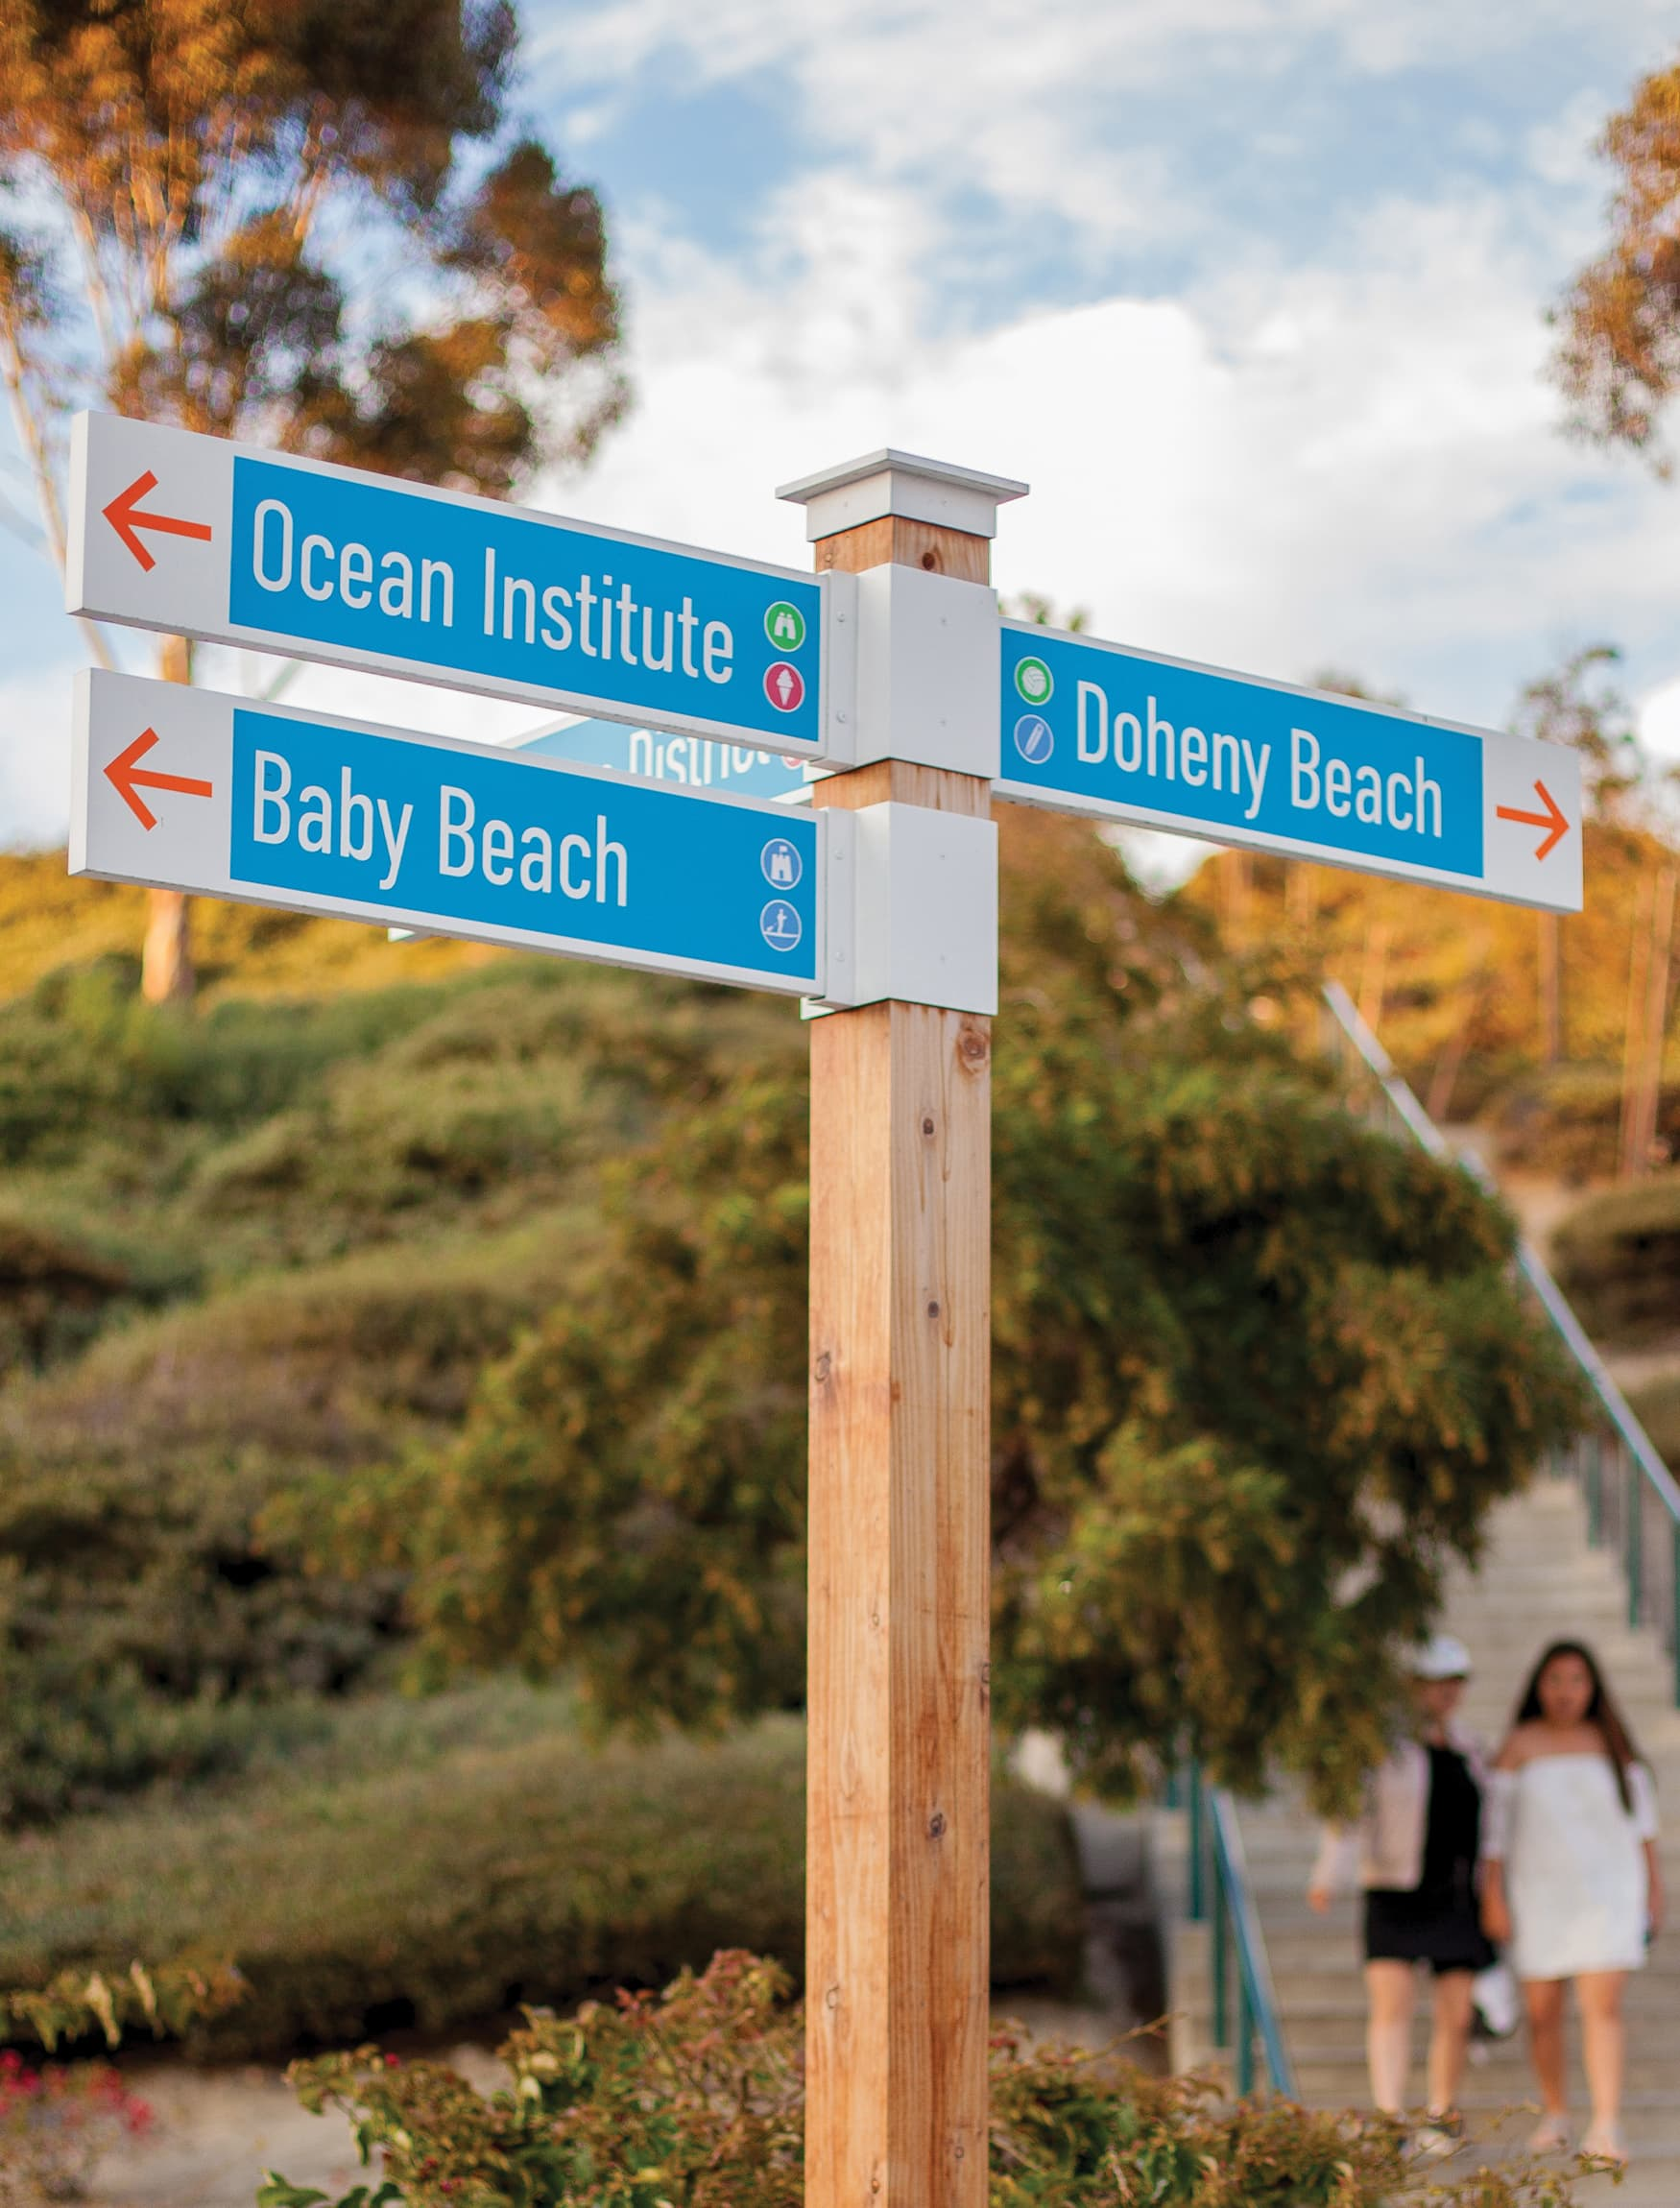 The City of Dana Point branded wayfinding directional sign